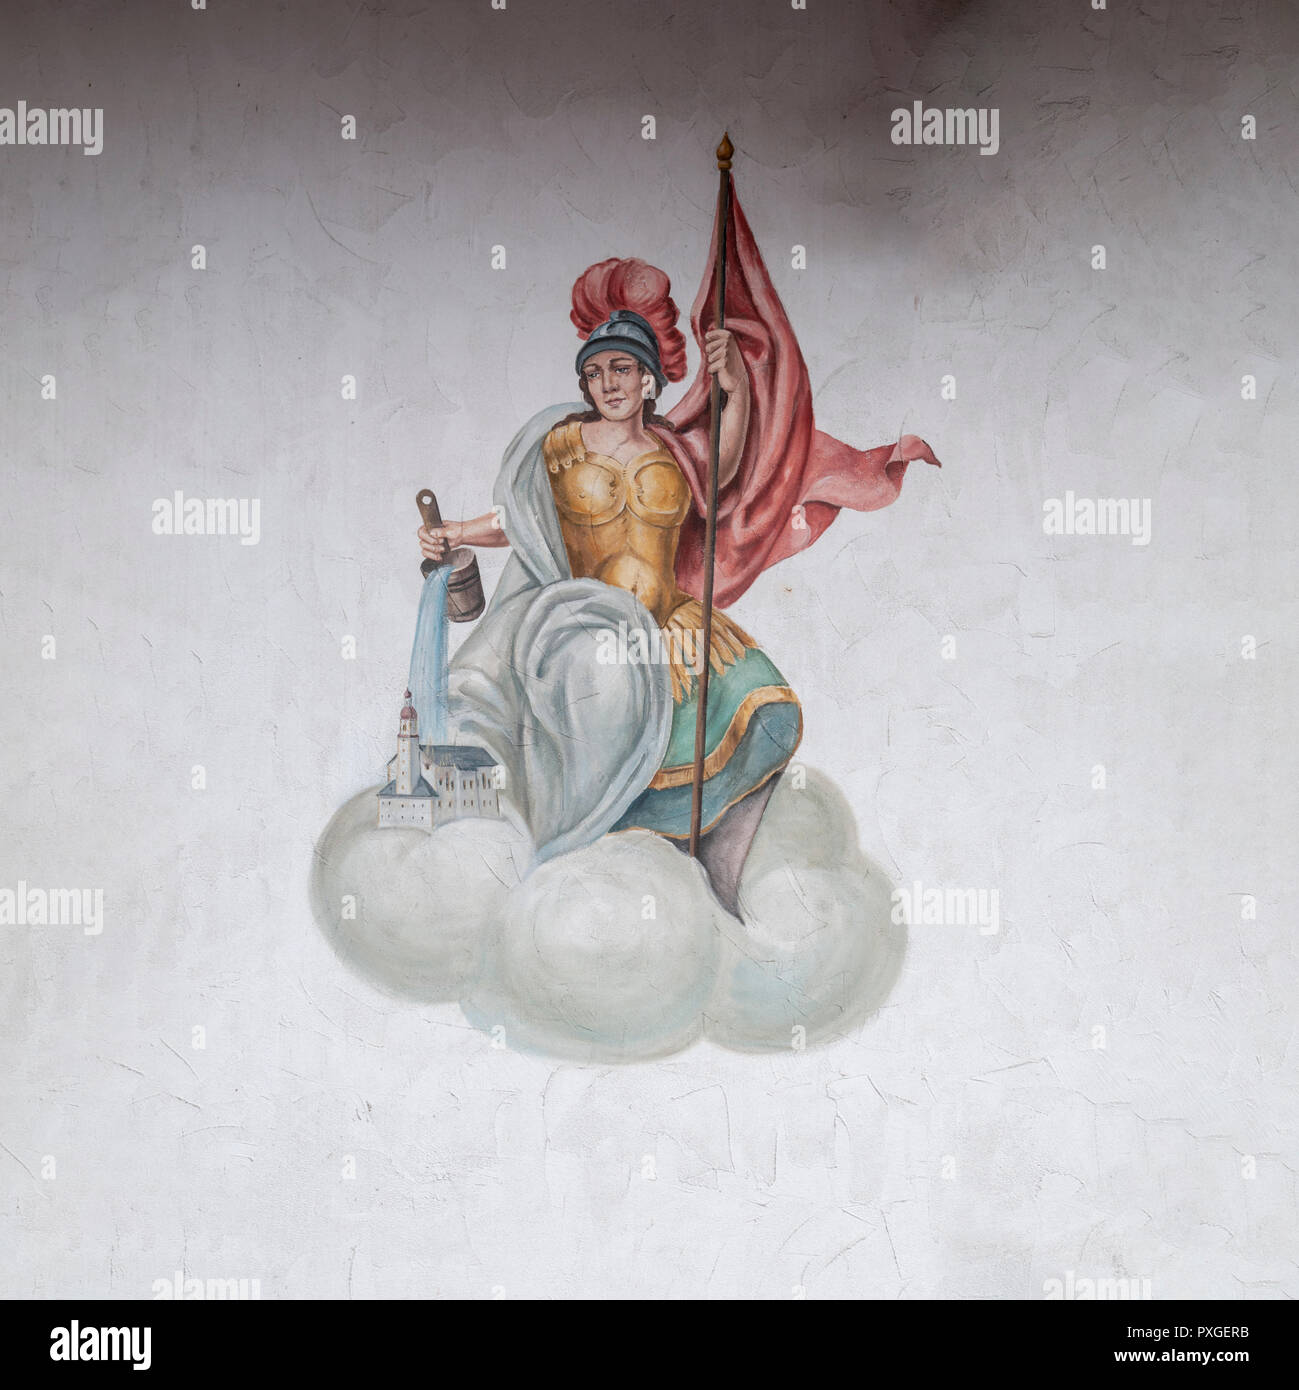 Mural of Athena, goddess of wisdom, handicraft, and warfare, a female deity in body armour, helmet and holding a banner watering a small town. From Ty - Stock Image